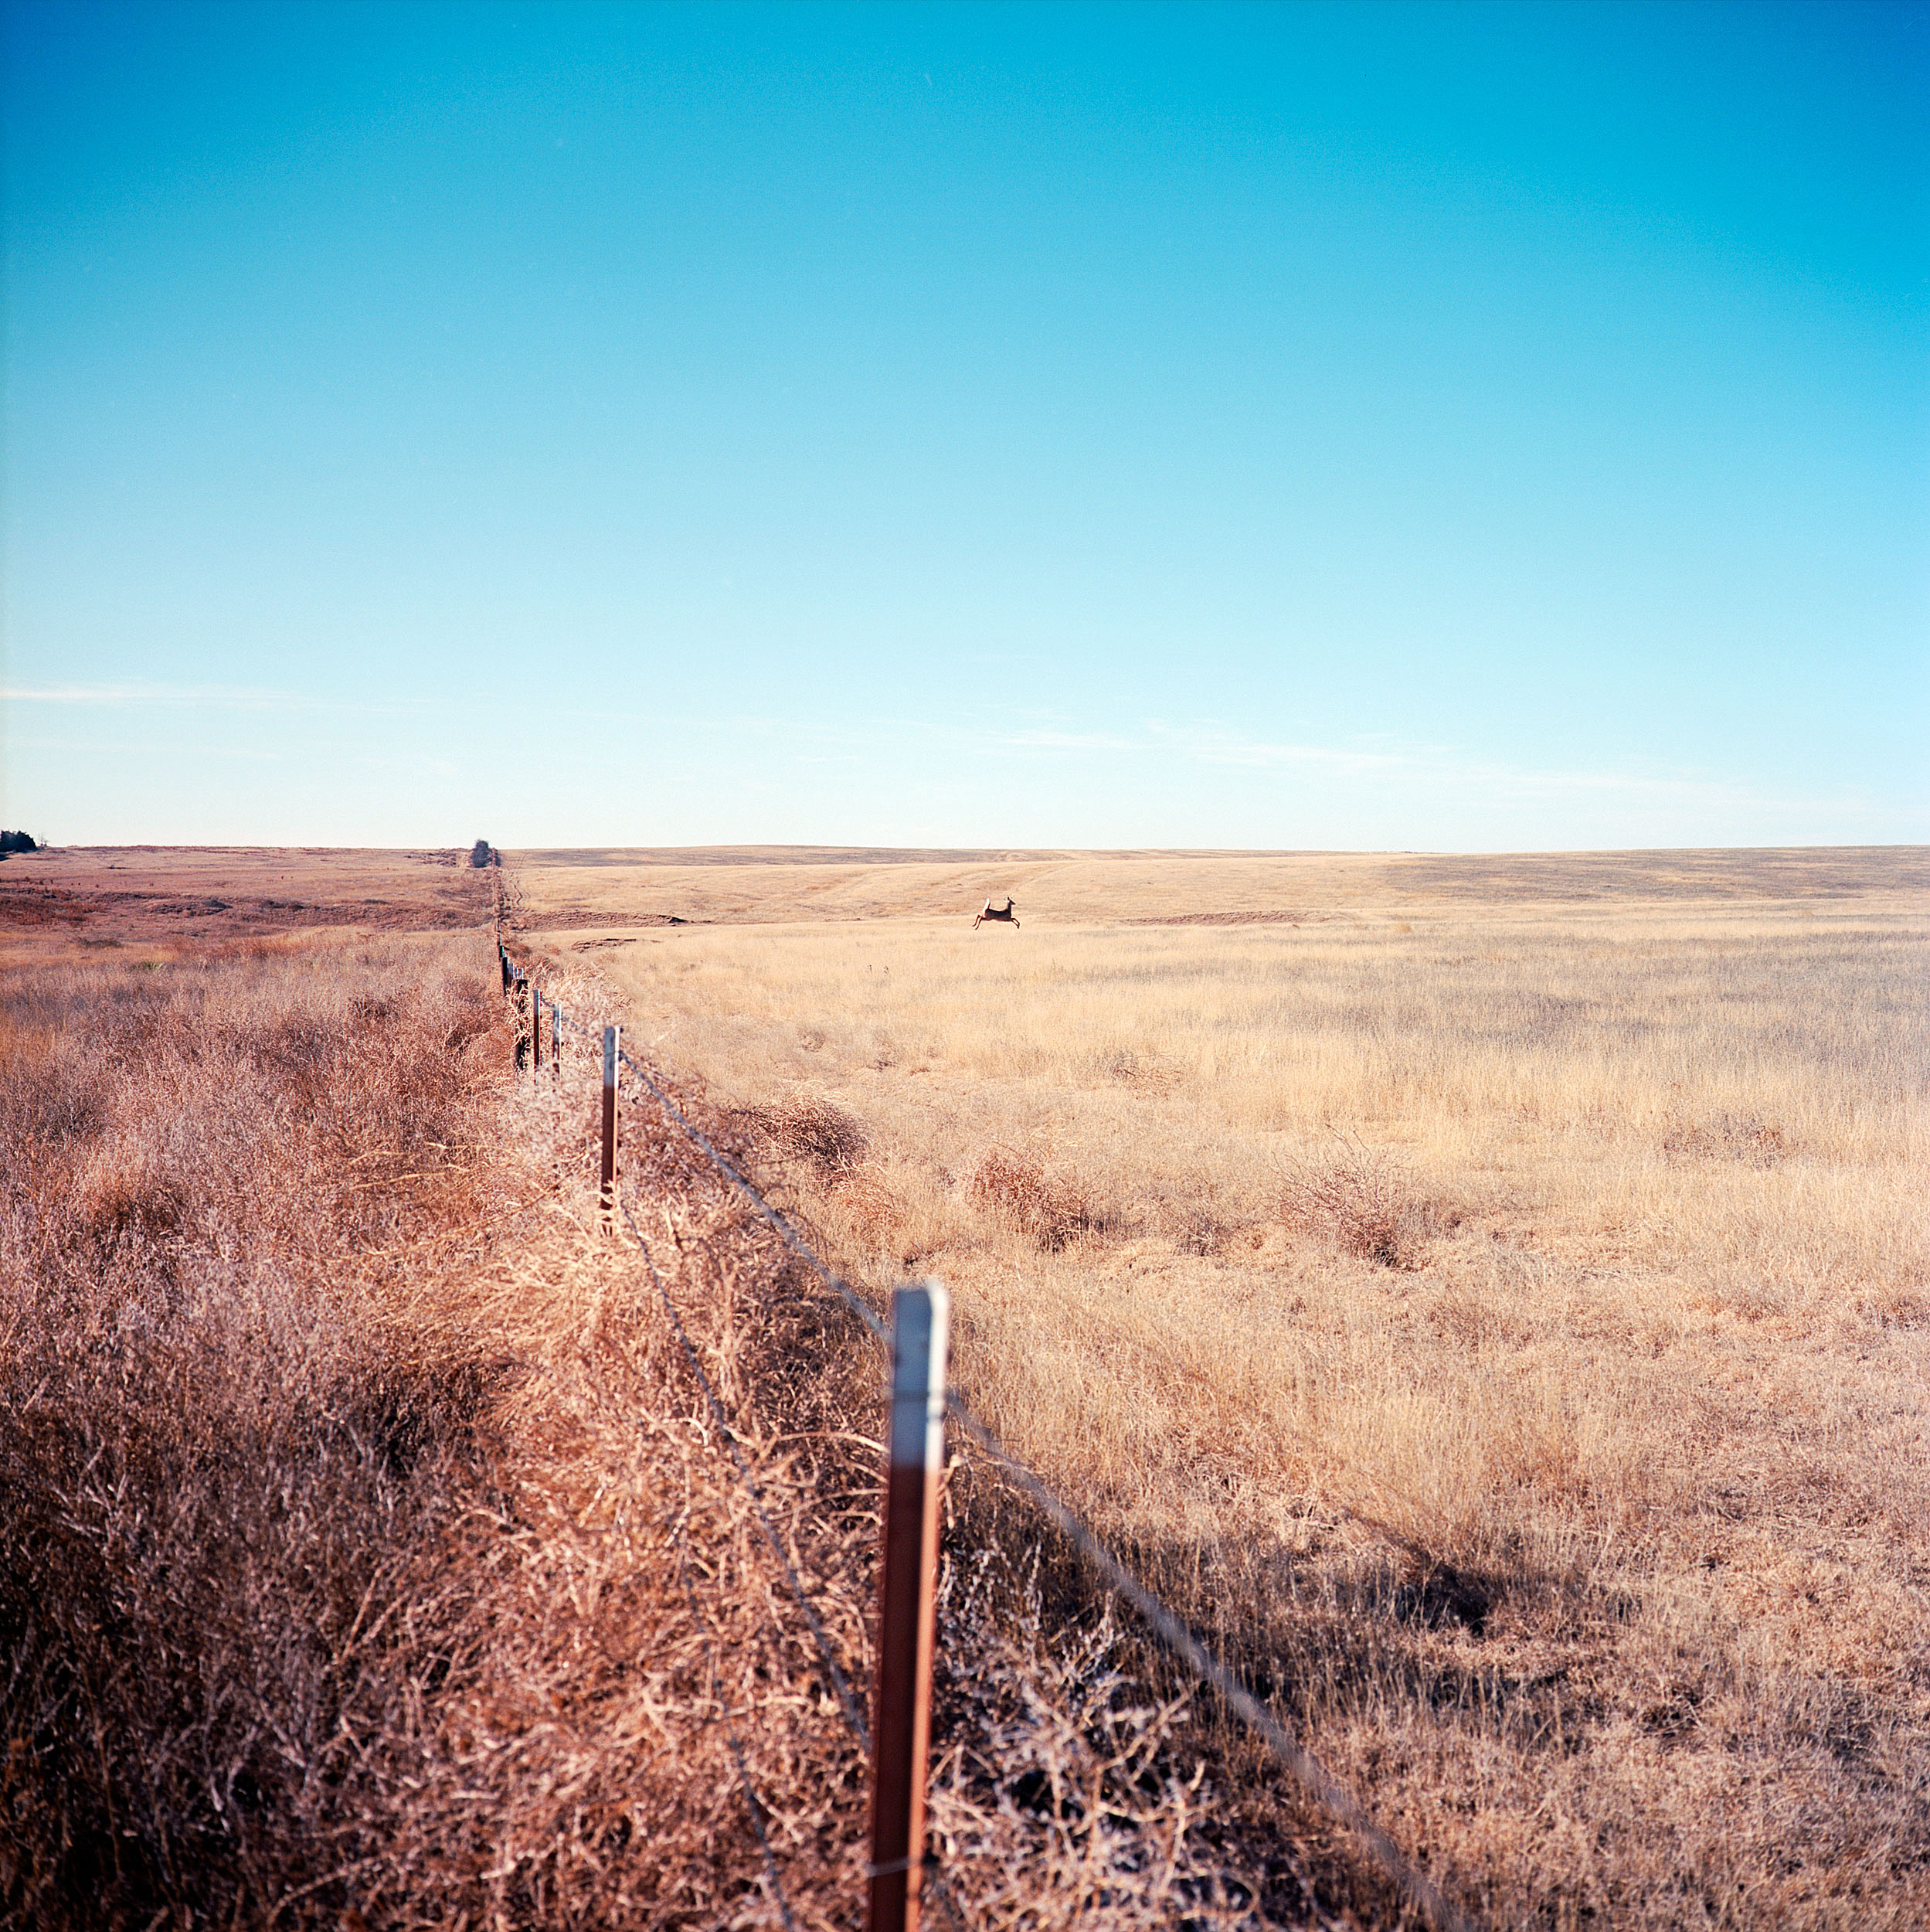 A white-tailed deer sprints away from tracks left over from the old Santa Fe Trail near Dodge City, Kansas. Opened by Spaniards at the end of the 18th century, the Santa Fe Trail brought migrants into the west in the 19th century from 1821 until 1880.